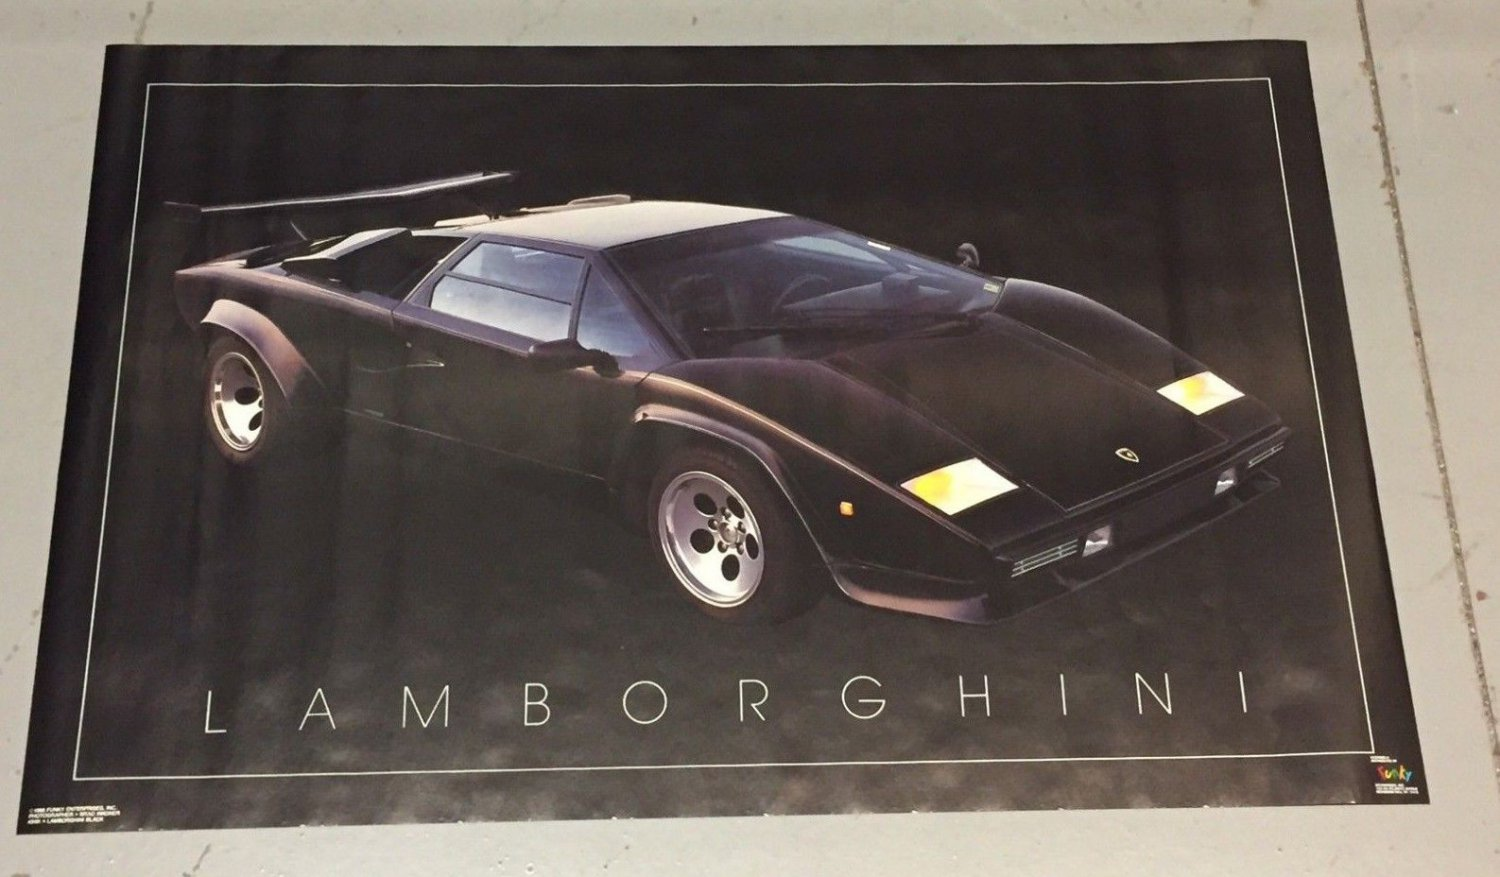 Vintage 1988 Black Lamborghini Poster (22 x 34 inches) never